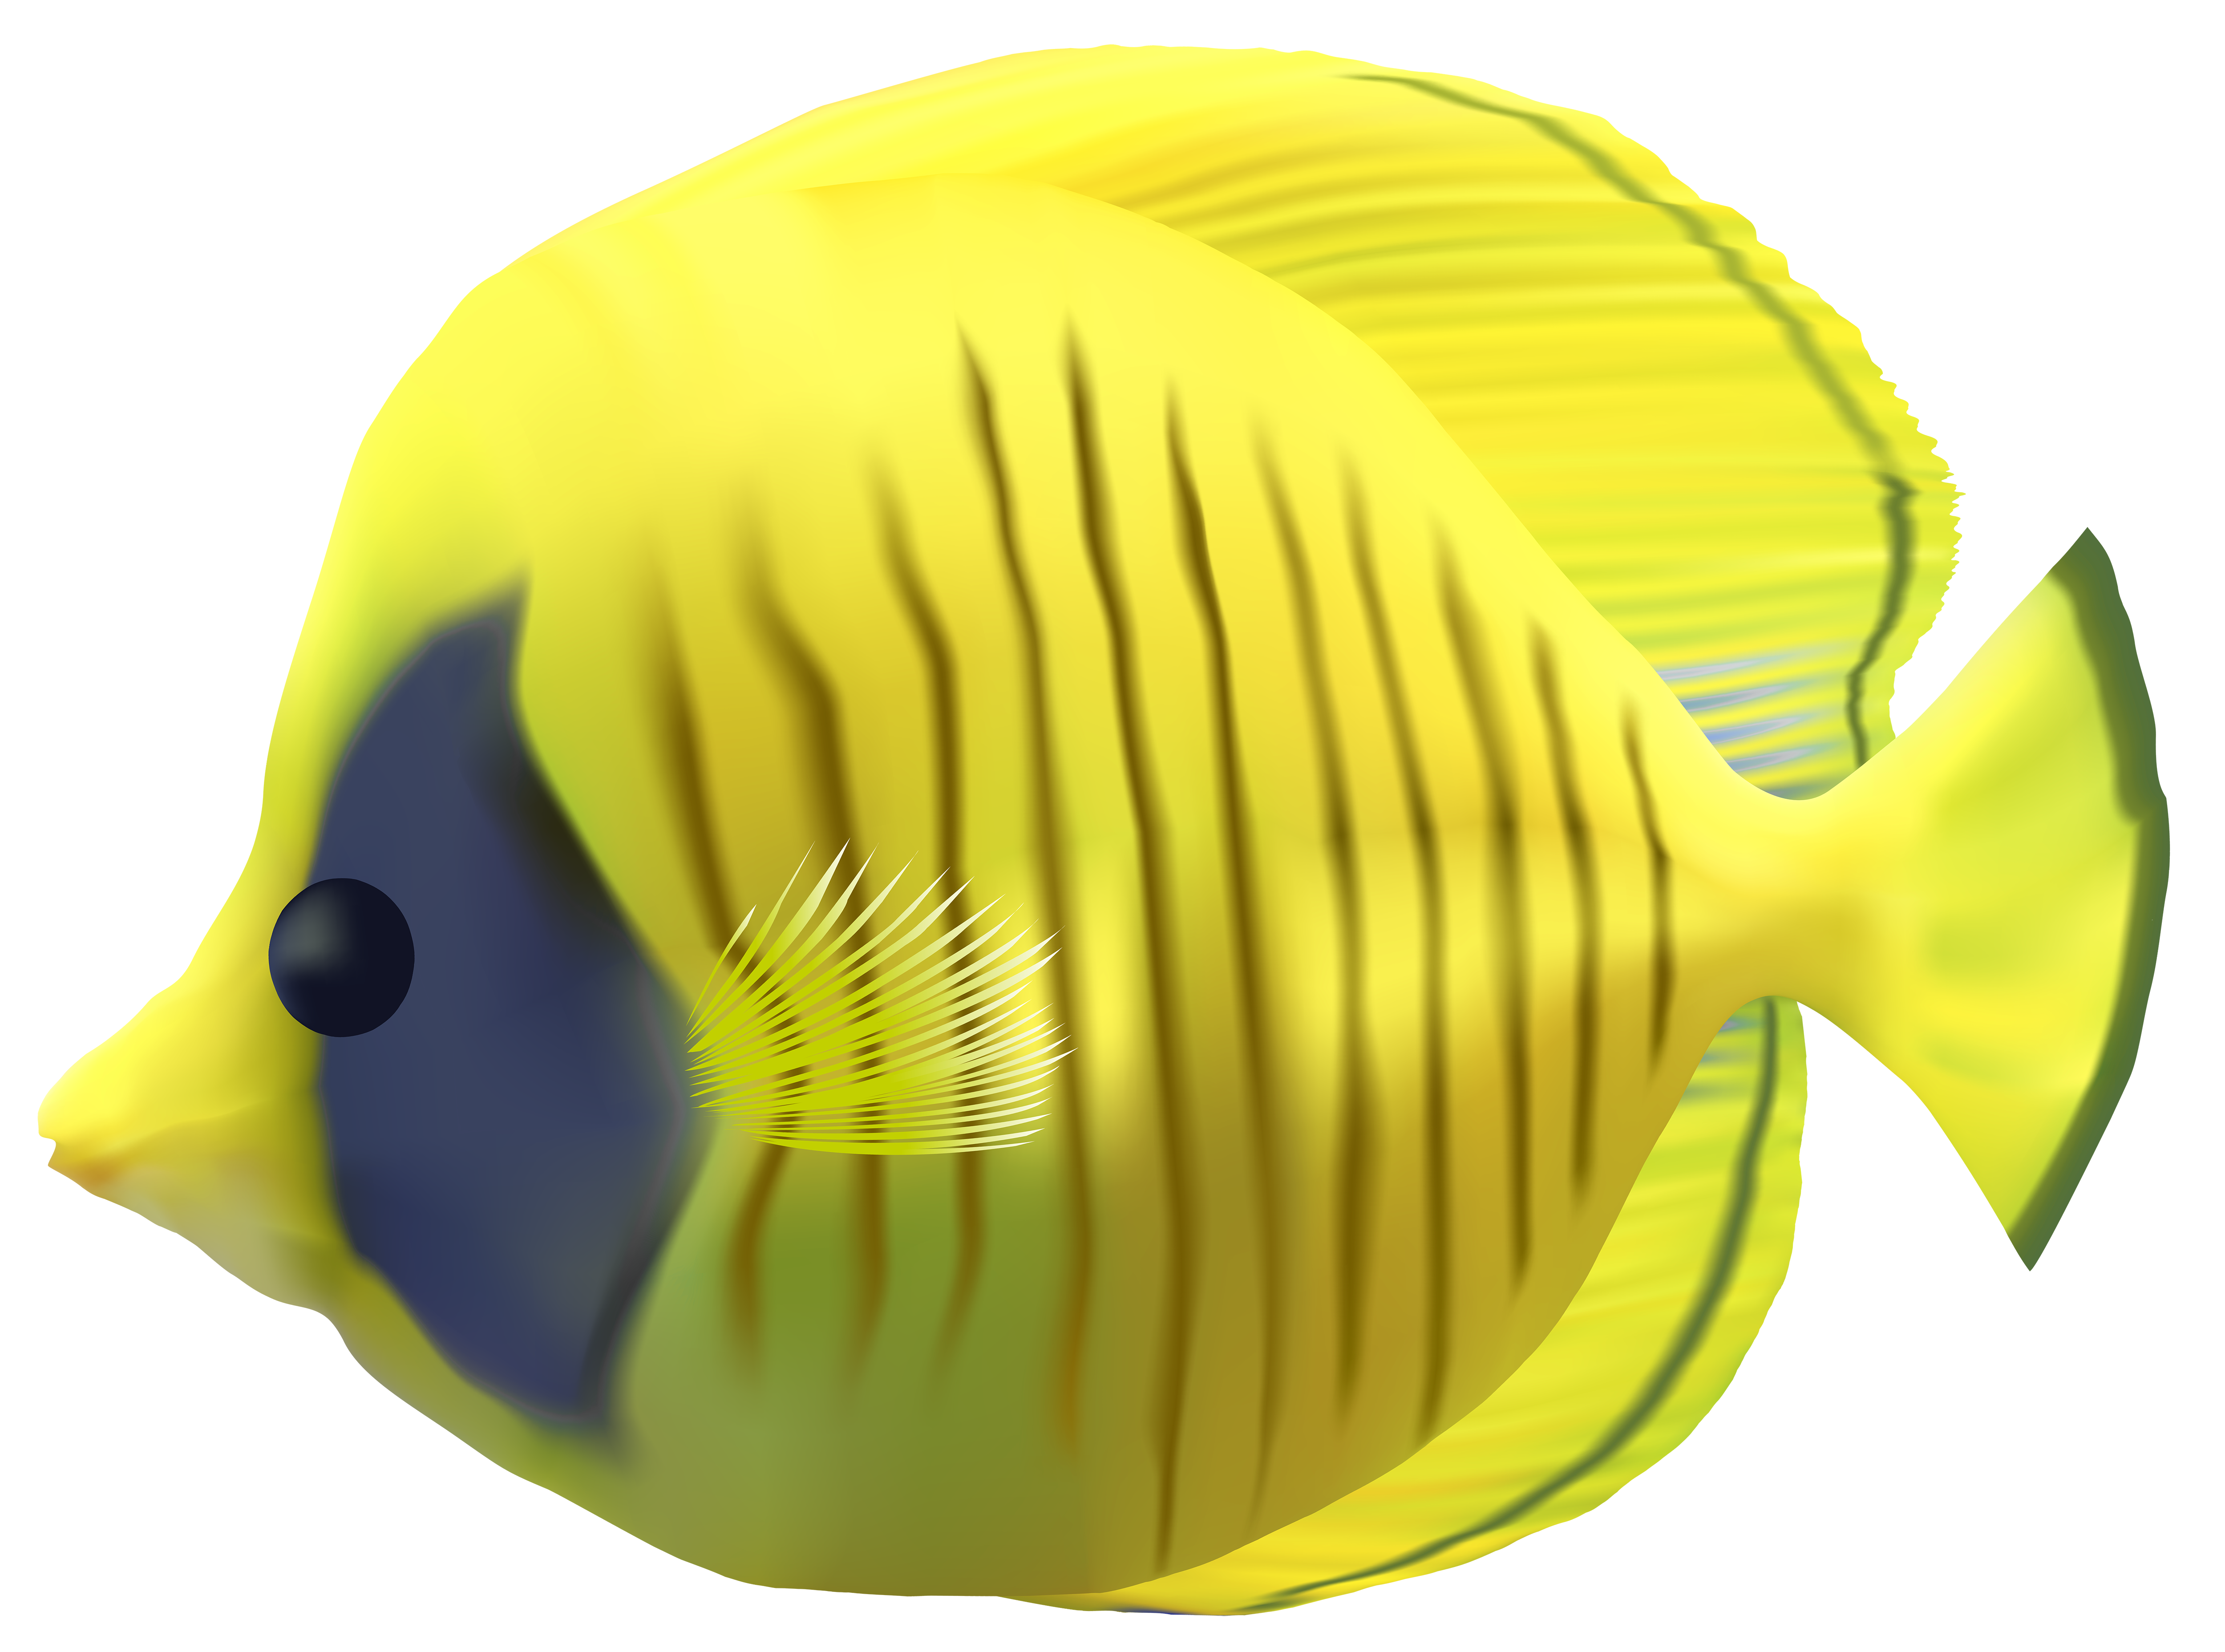 Fish clip art transparent background. Yellow png image gallery